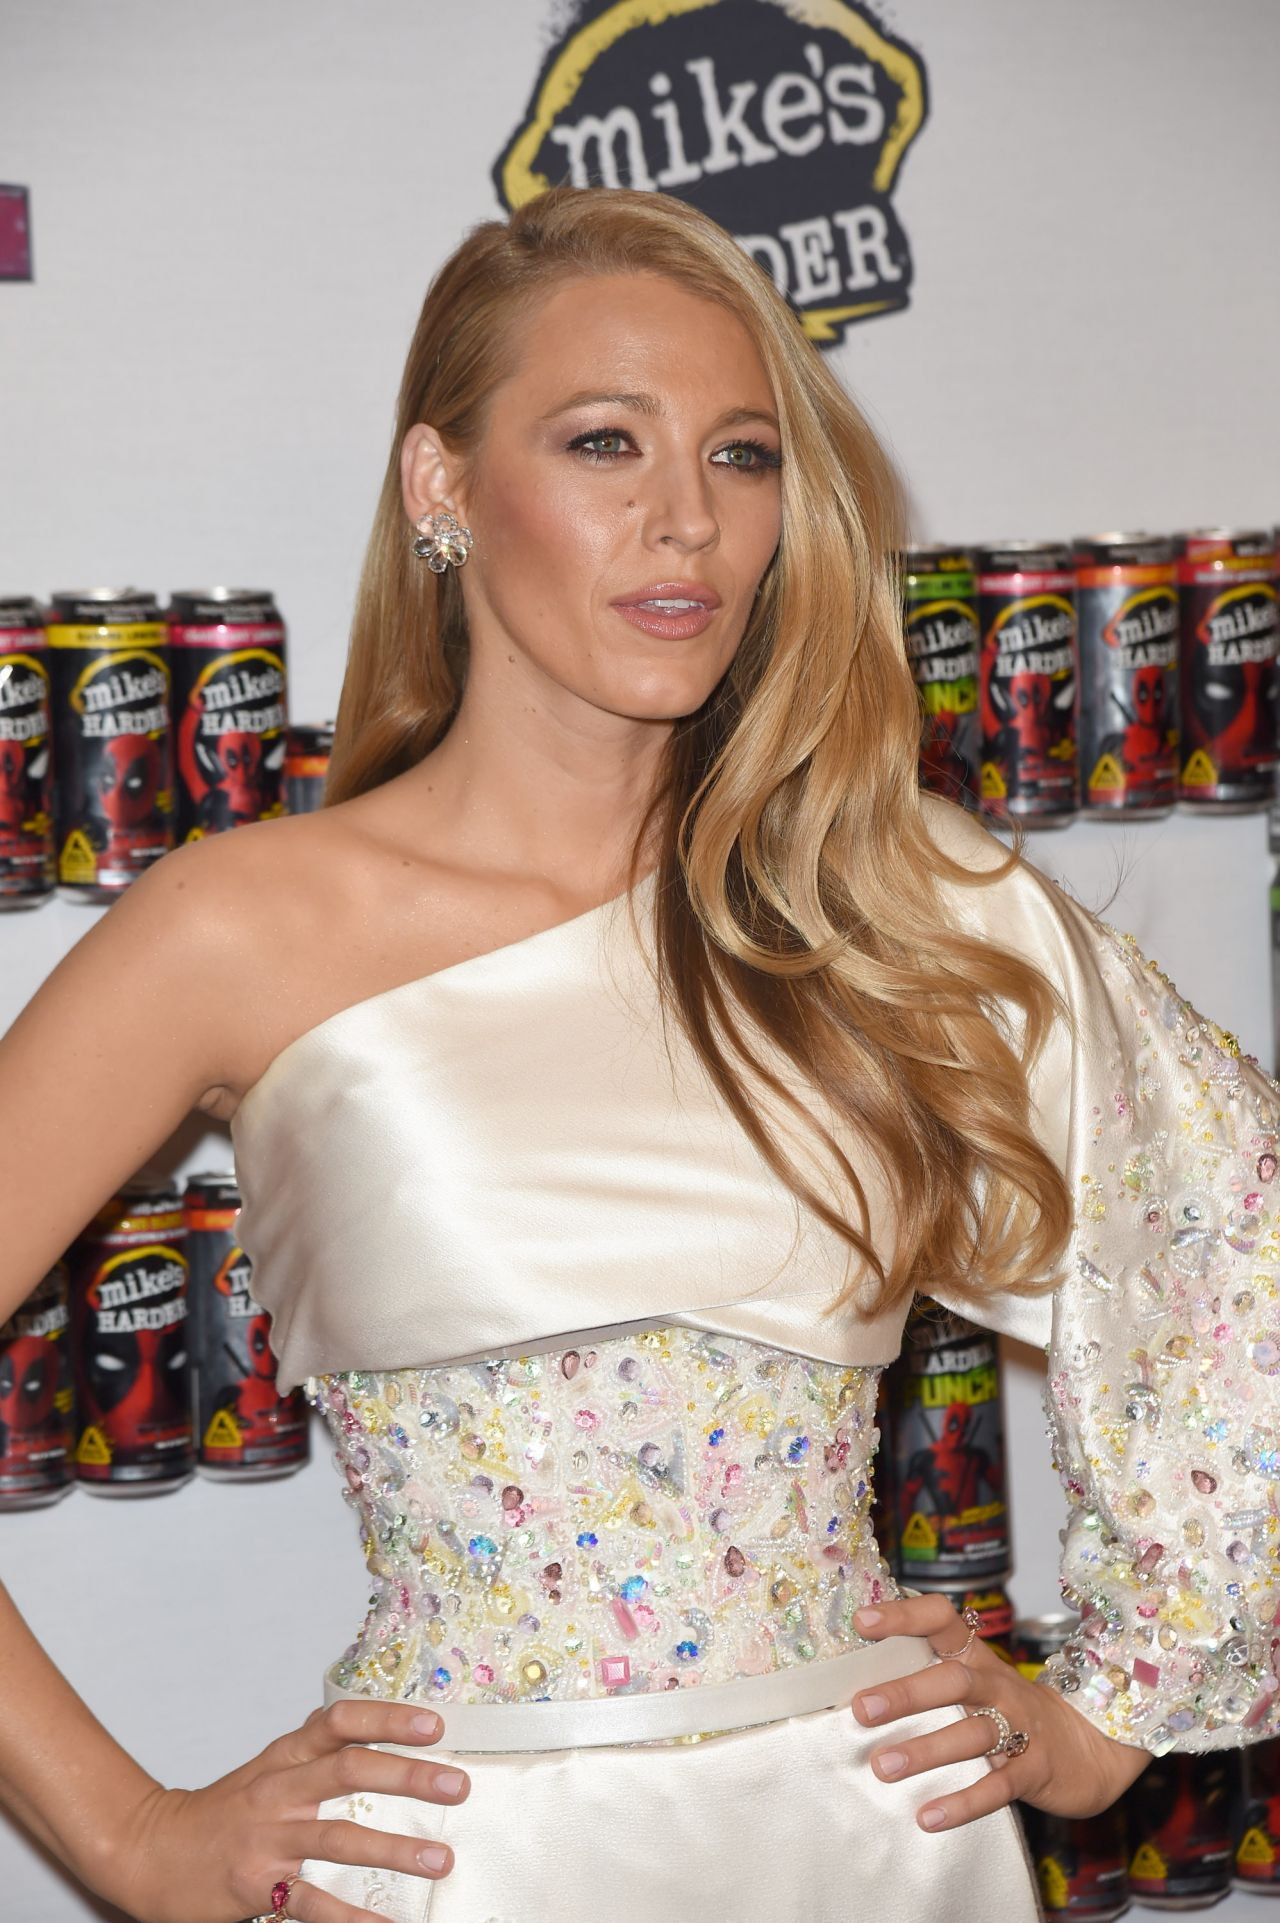 blake-lively-deadpool-movie-fan-event-in-new-york-city-2-8-2016-5